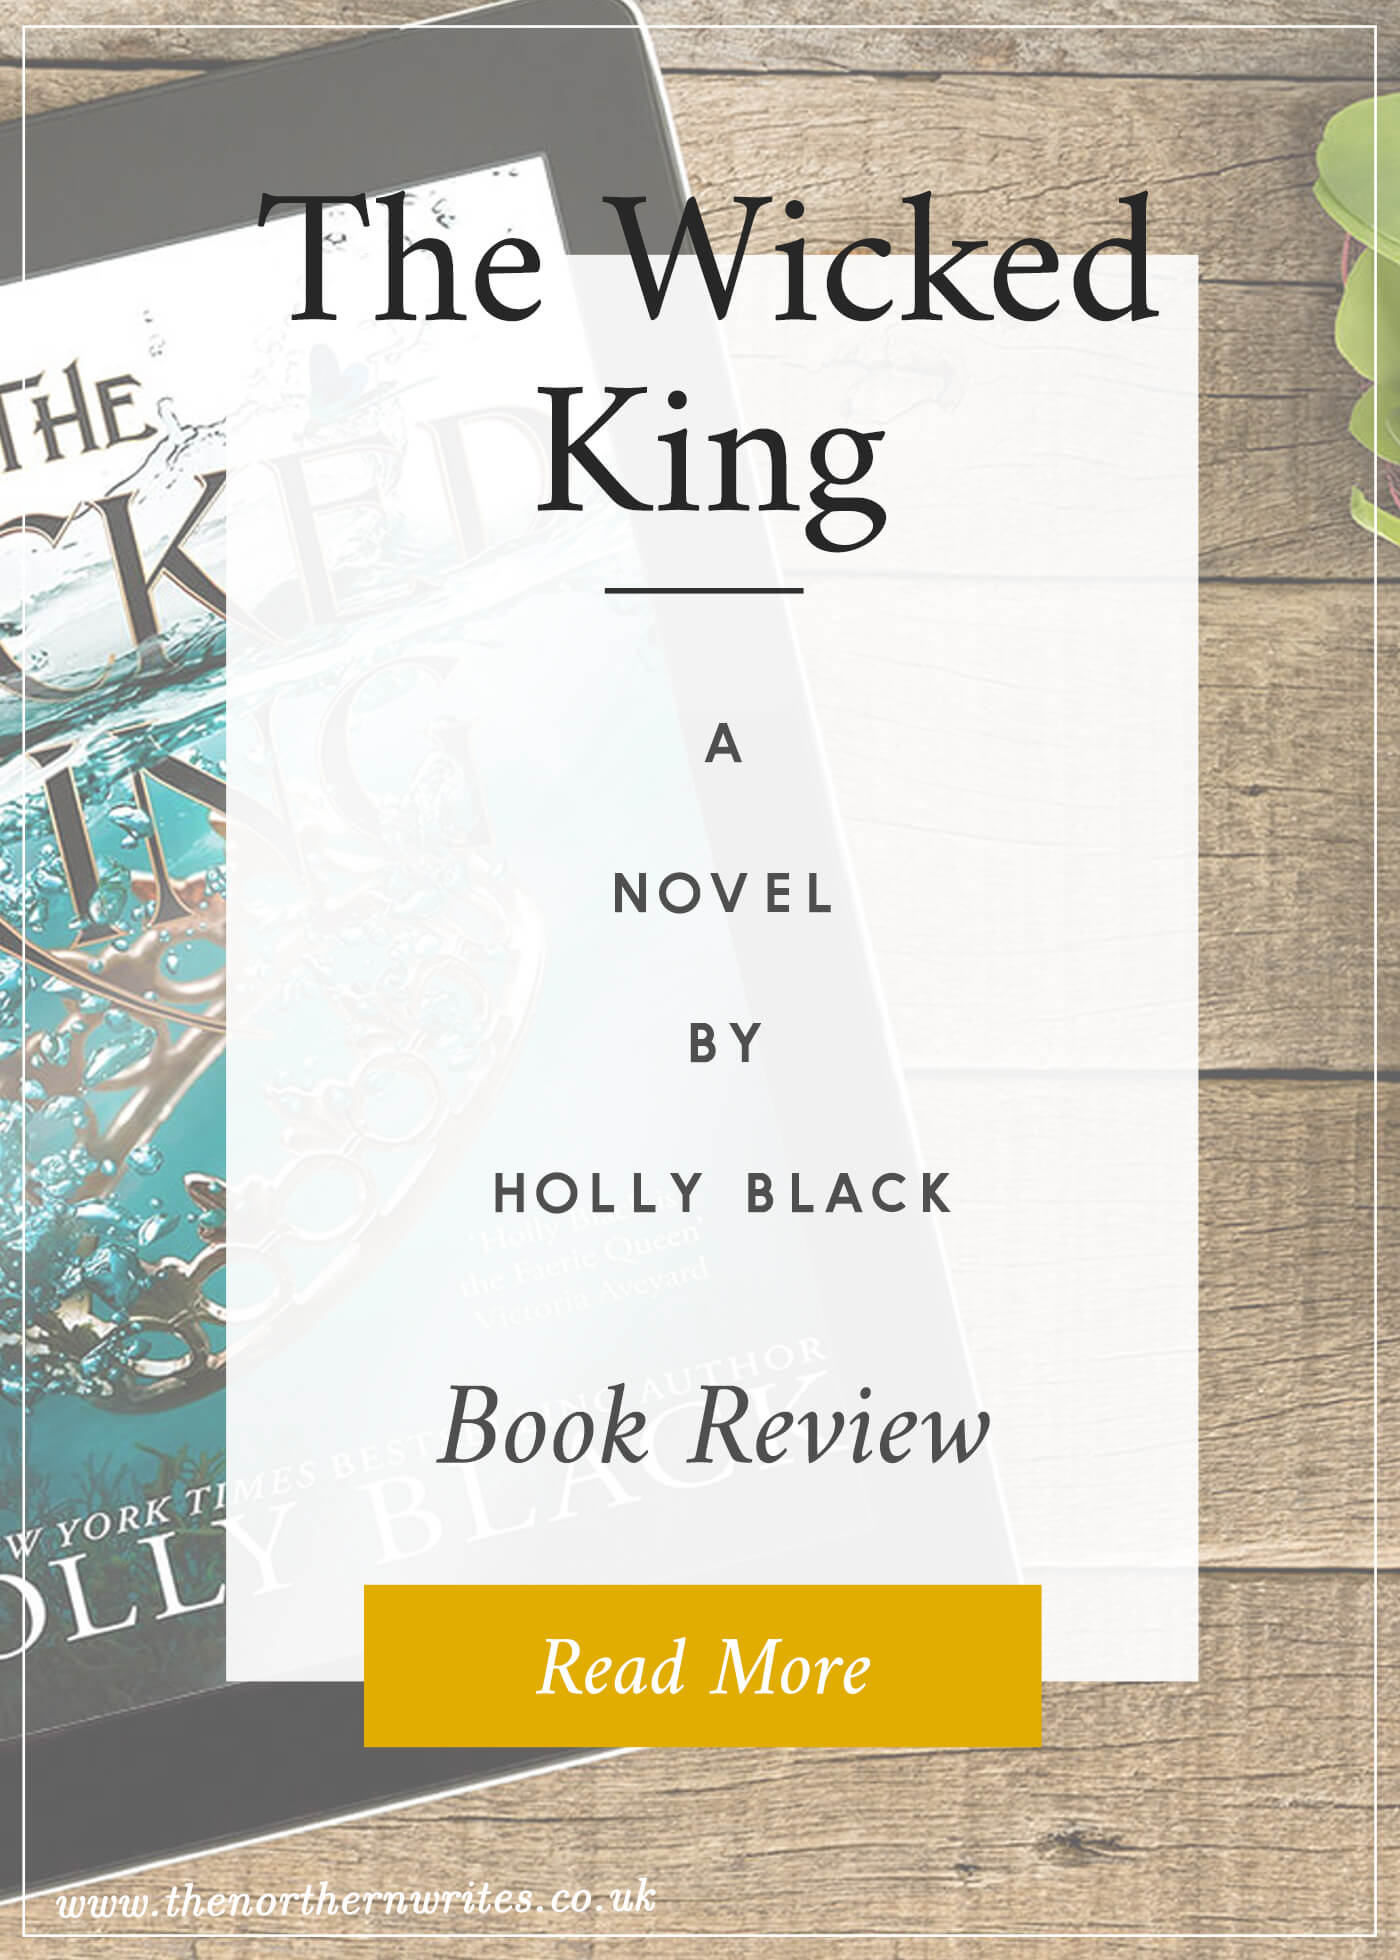 The Wicked King by holly black book review